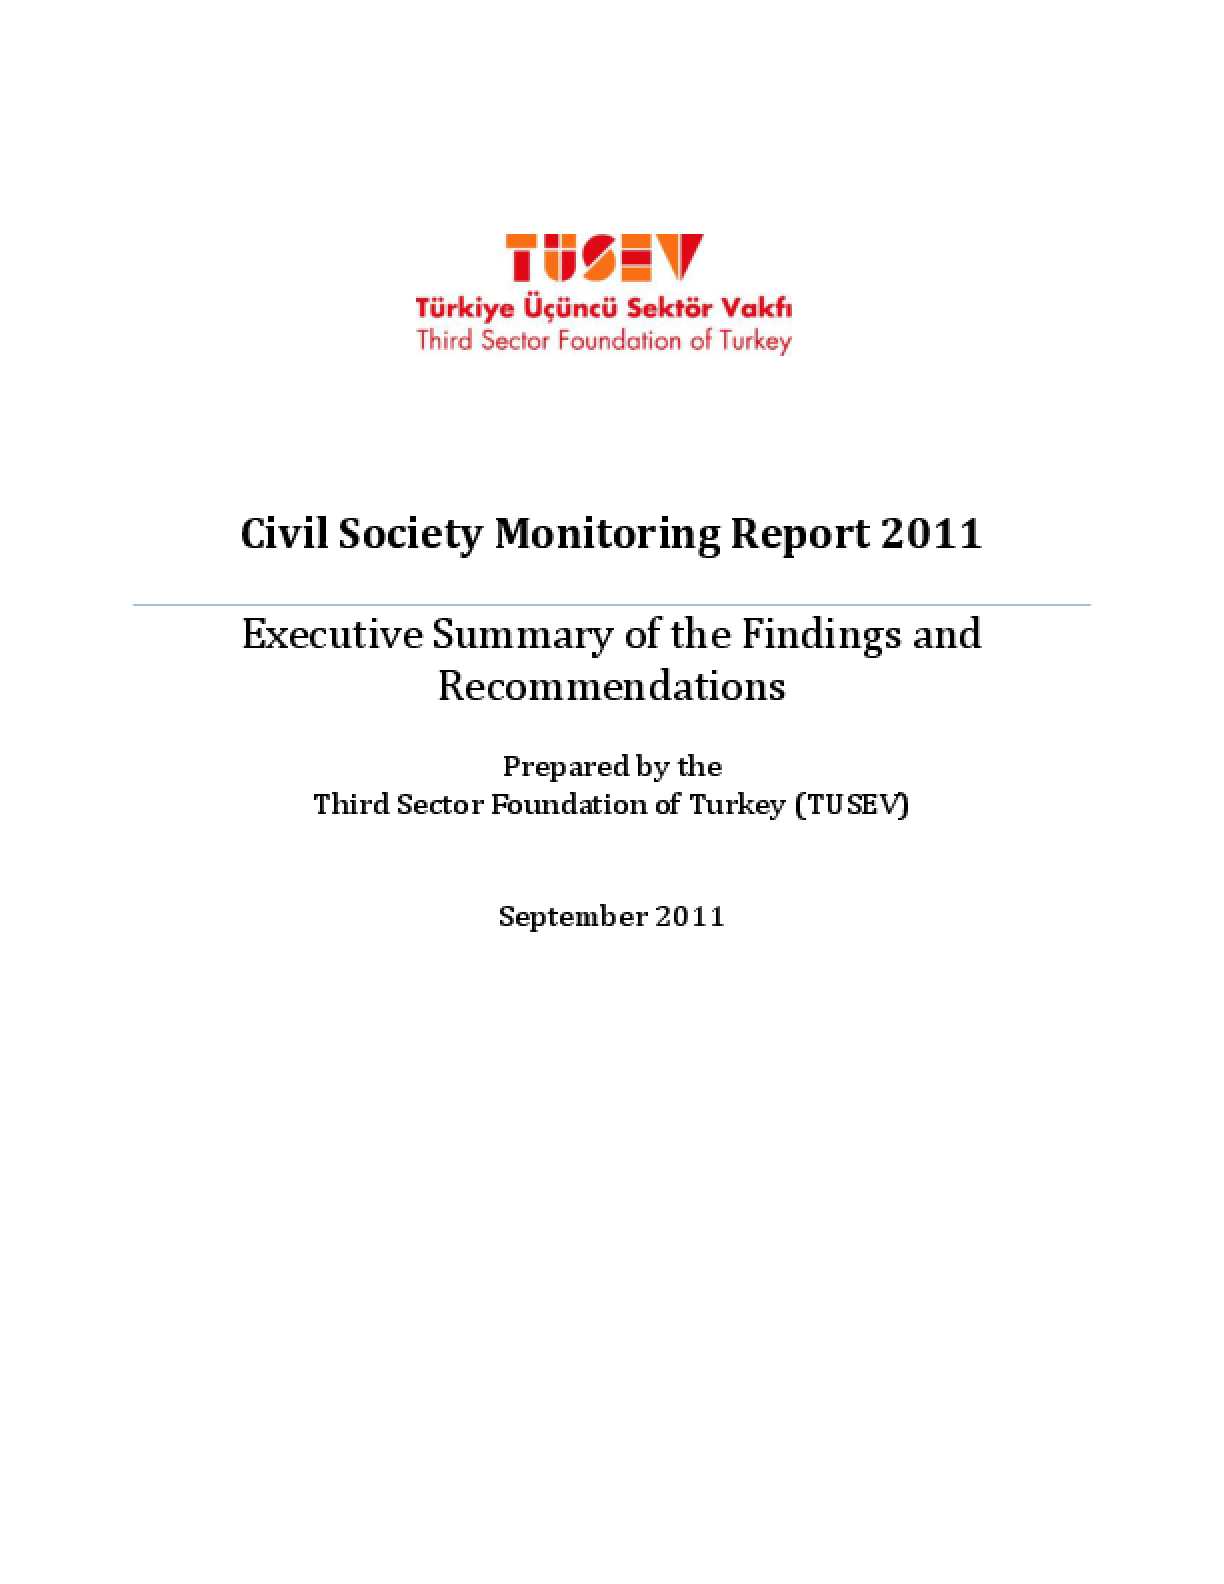 Civil Society Monitoring Report 2011: Executive Summary of the Findings and Recommendations